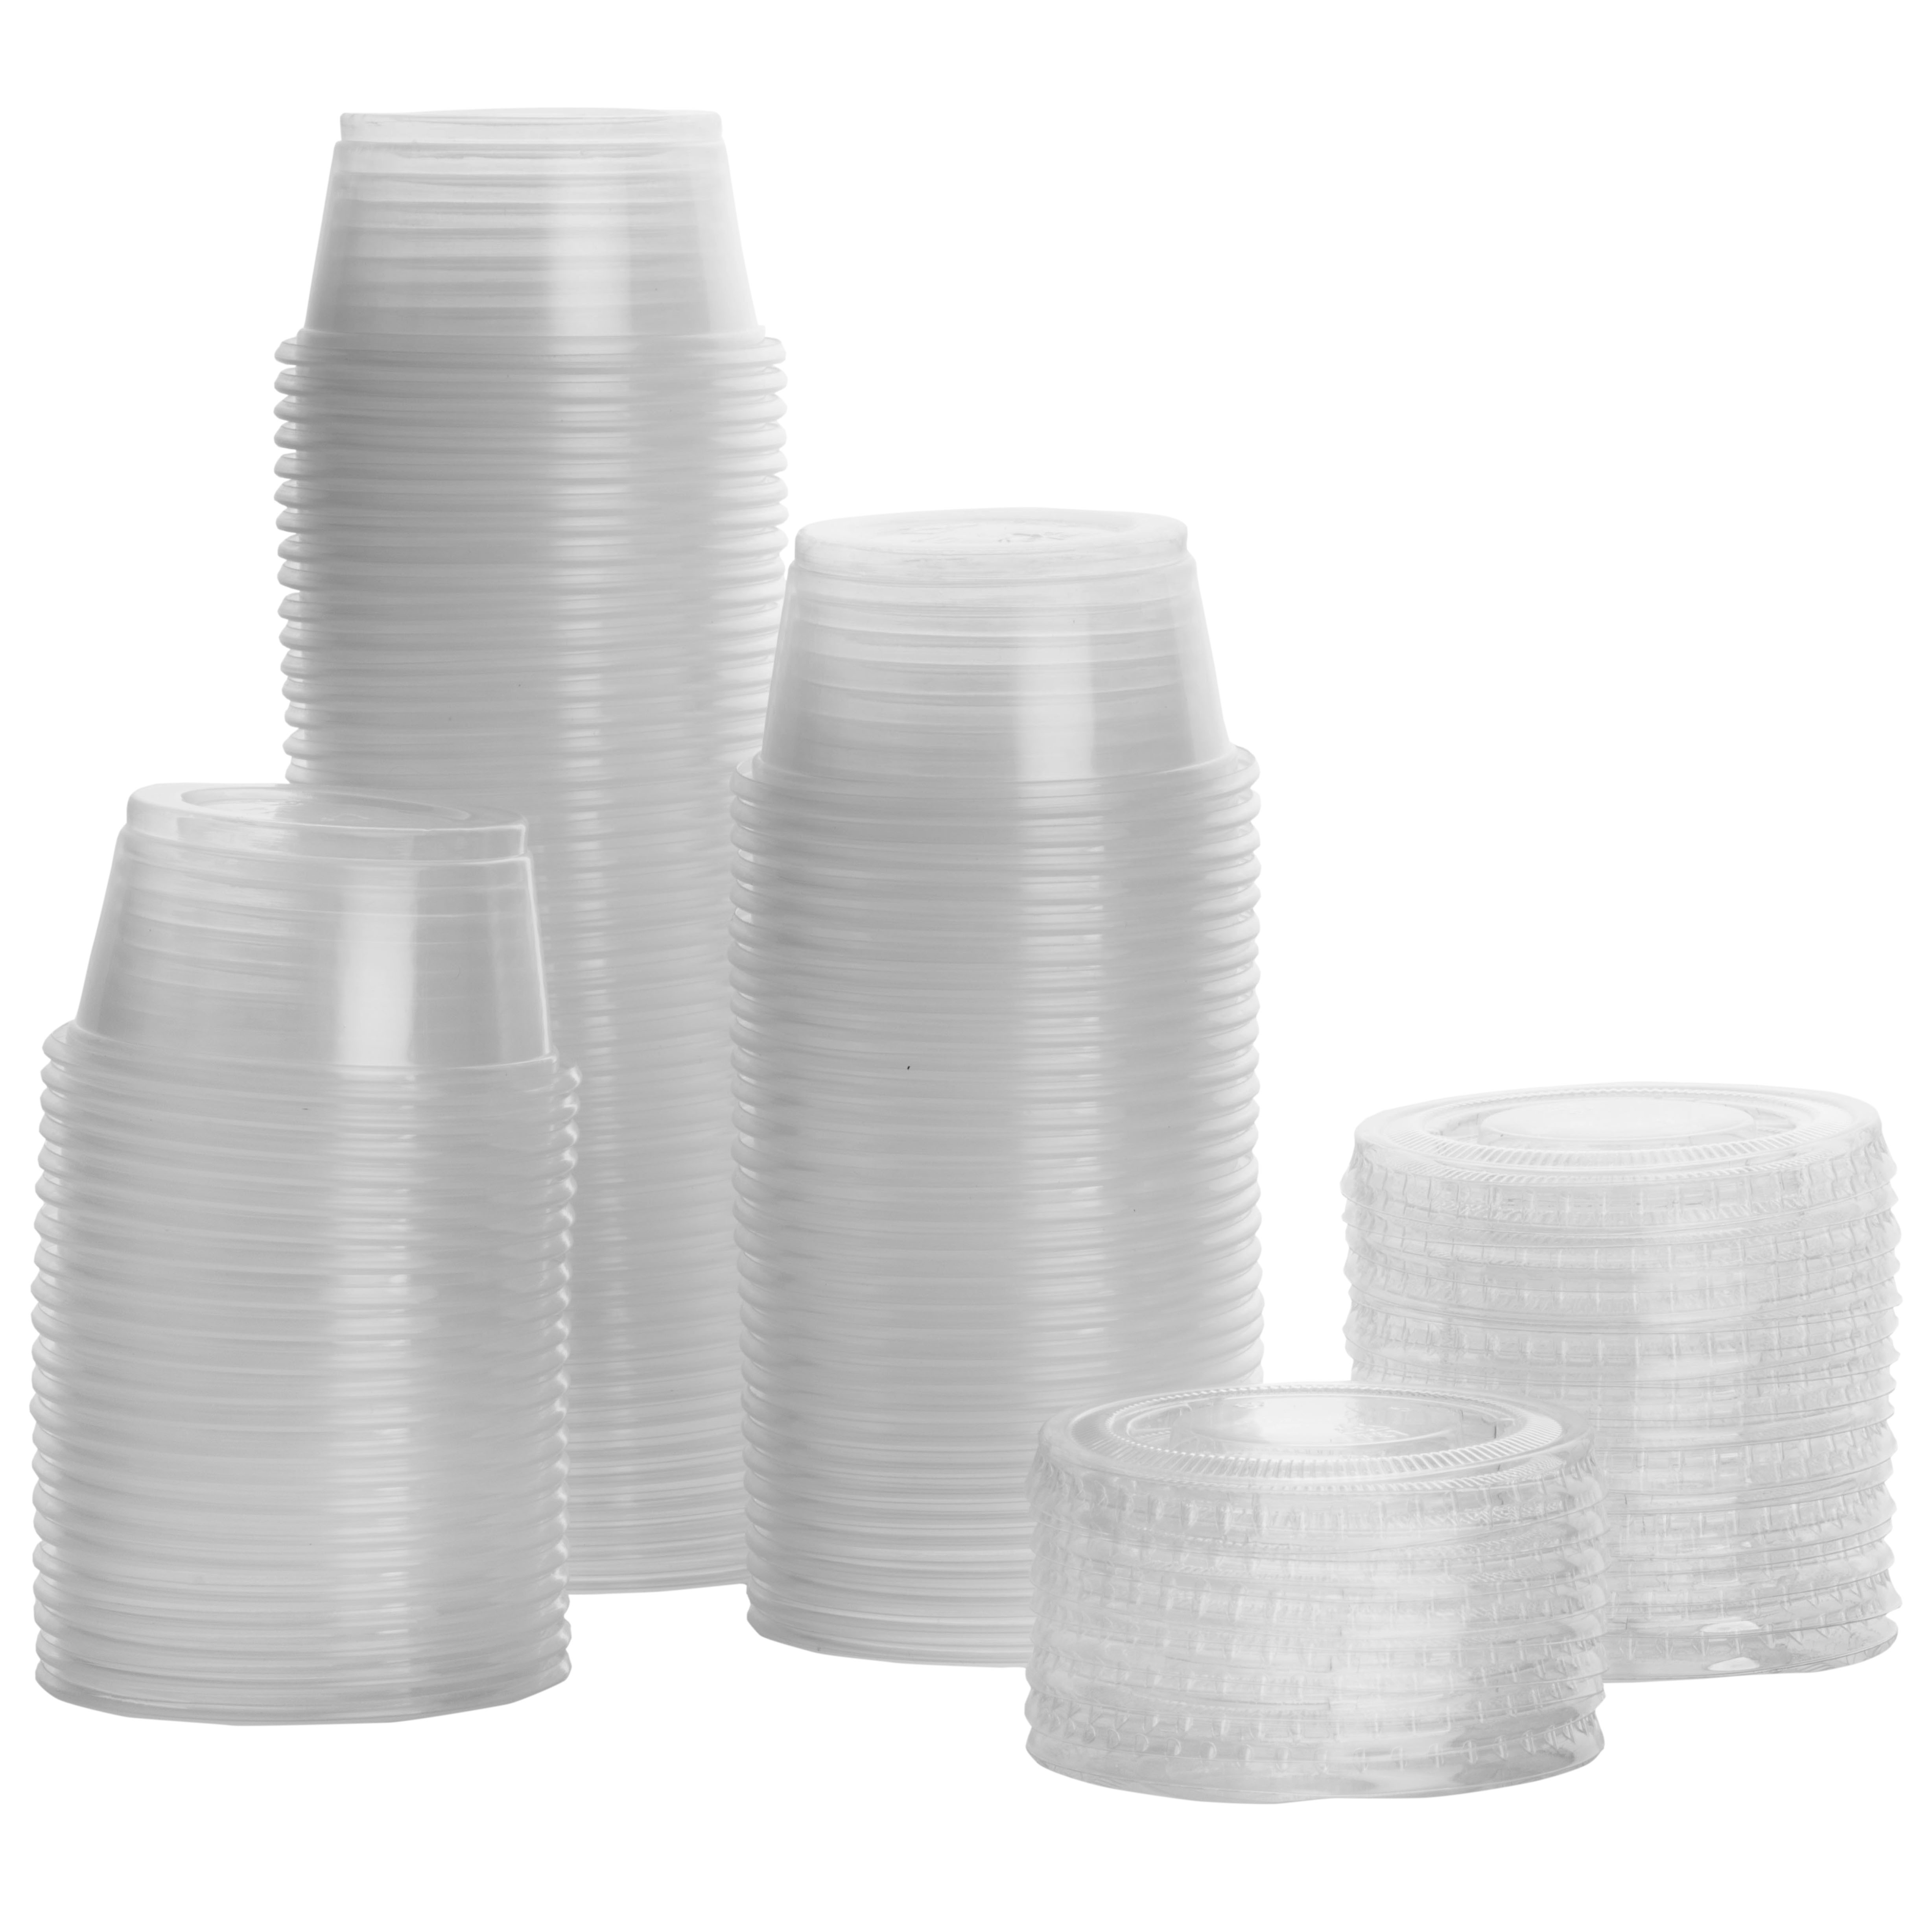 COMFY PACKAGE 2 oz. Plastic Disposable Portion Cups, Jello Shot Cups, Souffle Cups with Lids [100 Pack] by AV Inc.